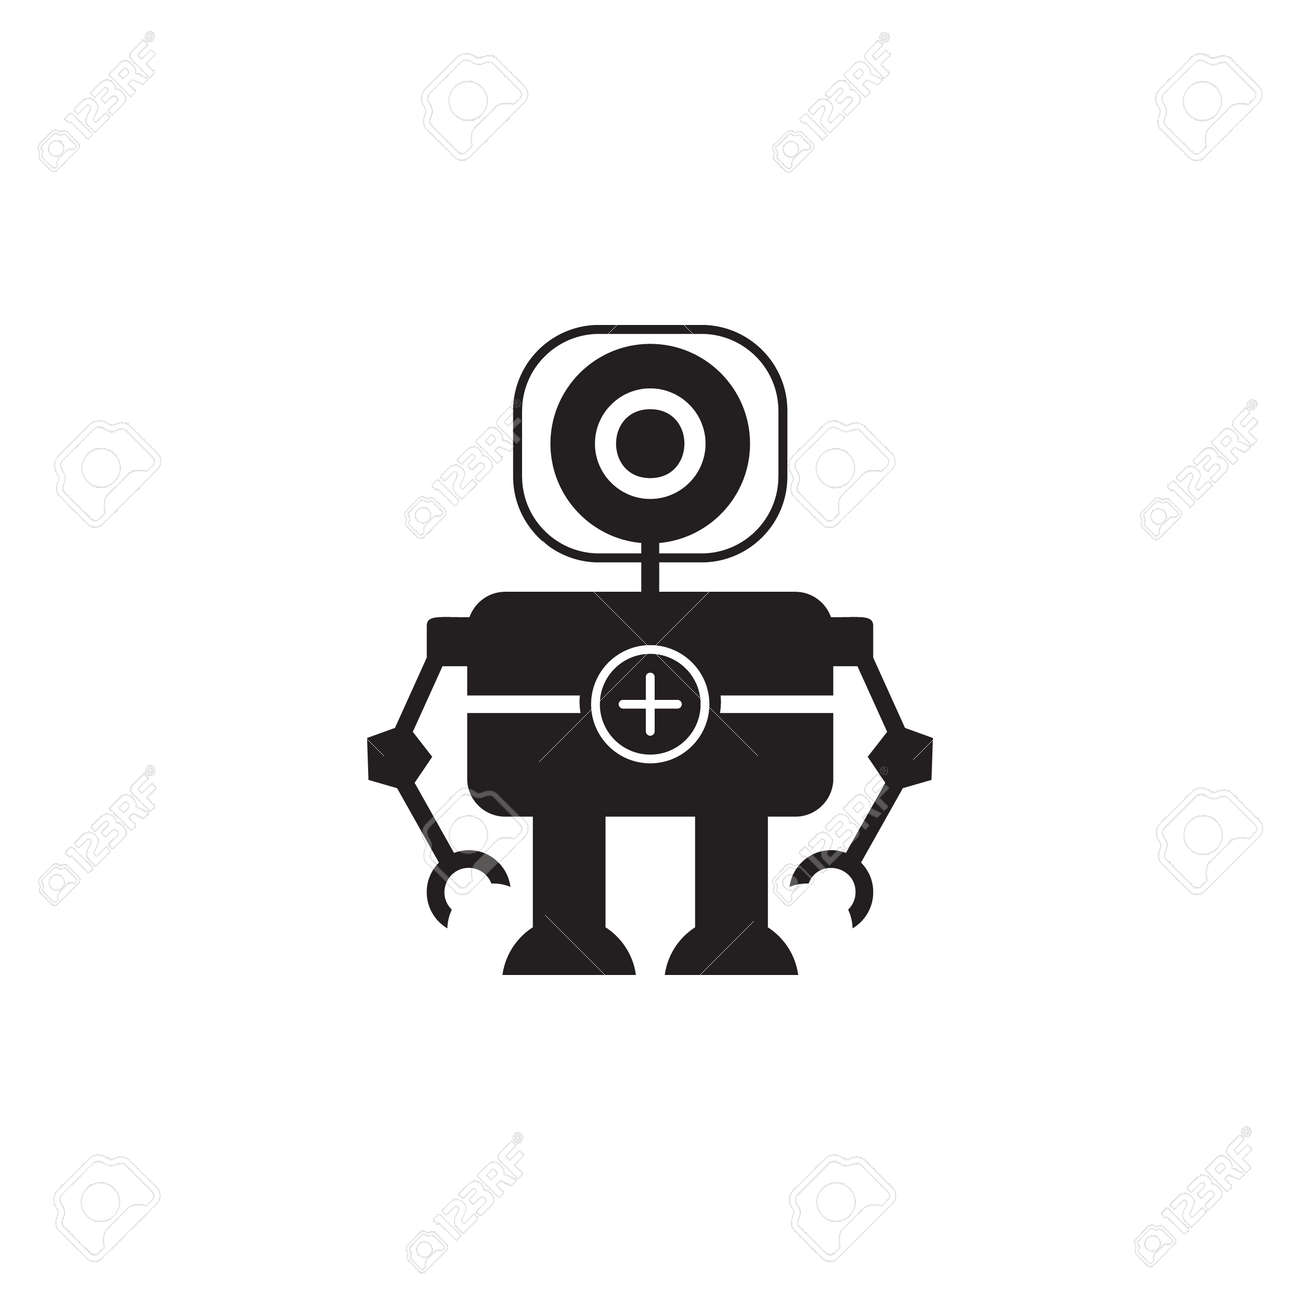 Robot doctor icon  Element of robots for advertising signs, mobile